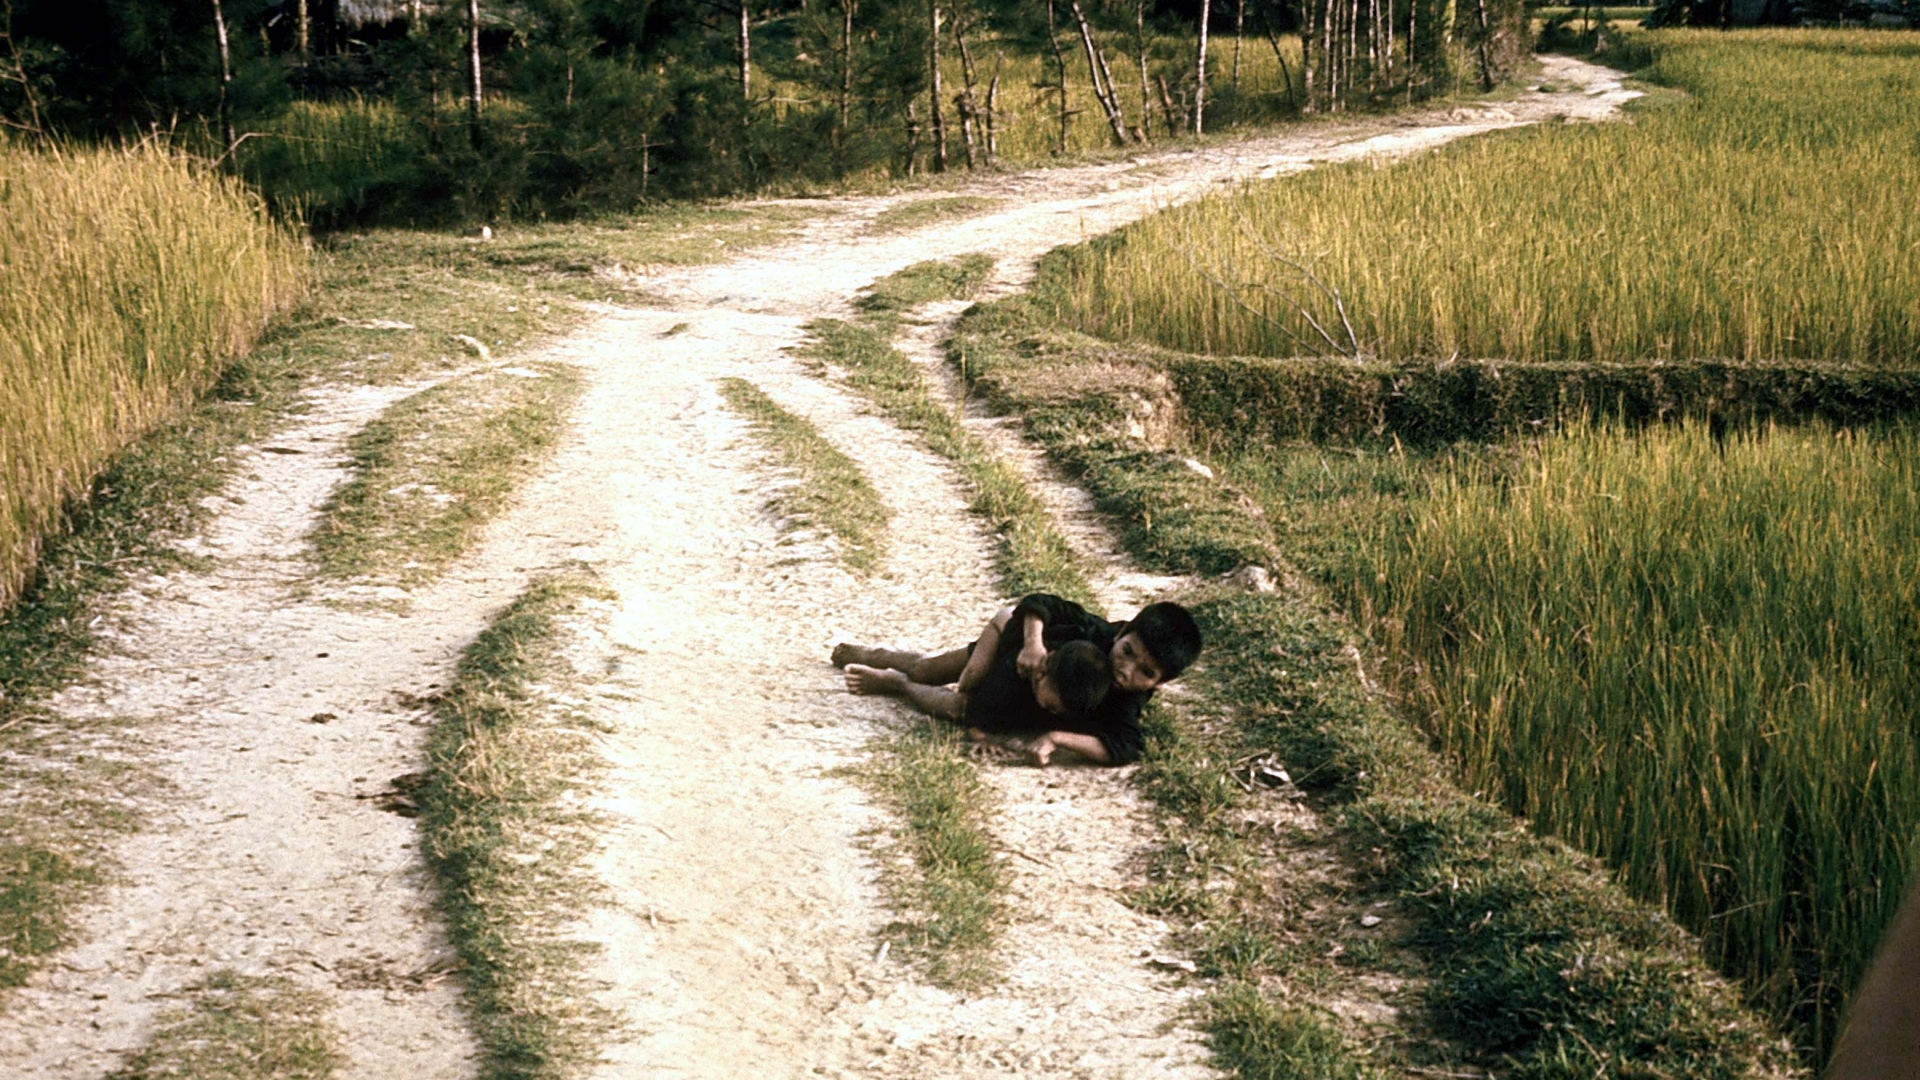 Vietnamese children about to be shot by US Army soldiers during pursuit of Vietcong militia, as per order of Lieutenant Calley Jr. (later court-martialed), an incident which became known as the My Lai Massacre, on March 16, 1968 in My Lai, South Vietnam. (Credit: Ronald S. Haeberle/The LIFE Images Collection/Getty Images)